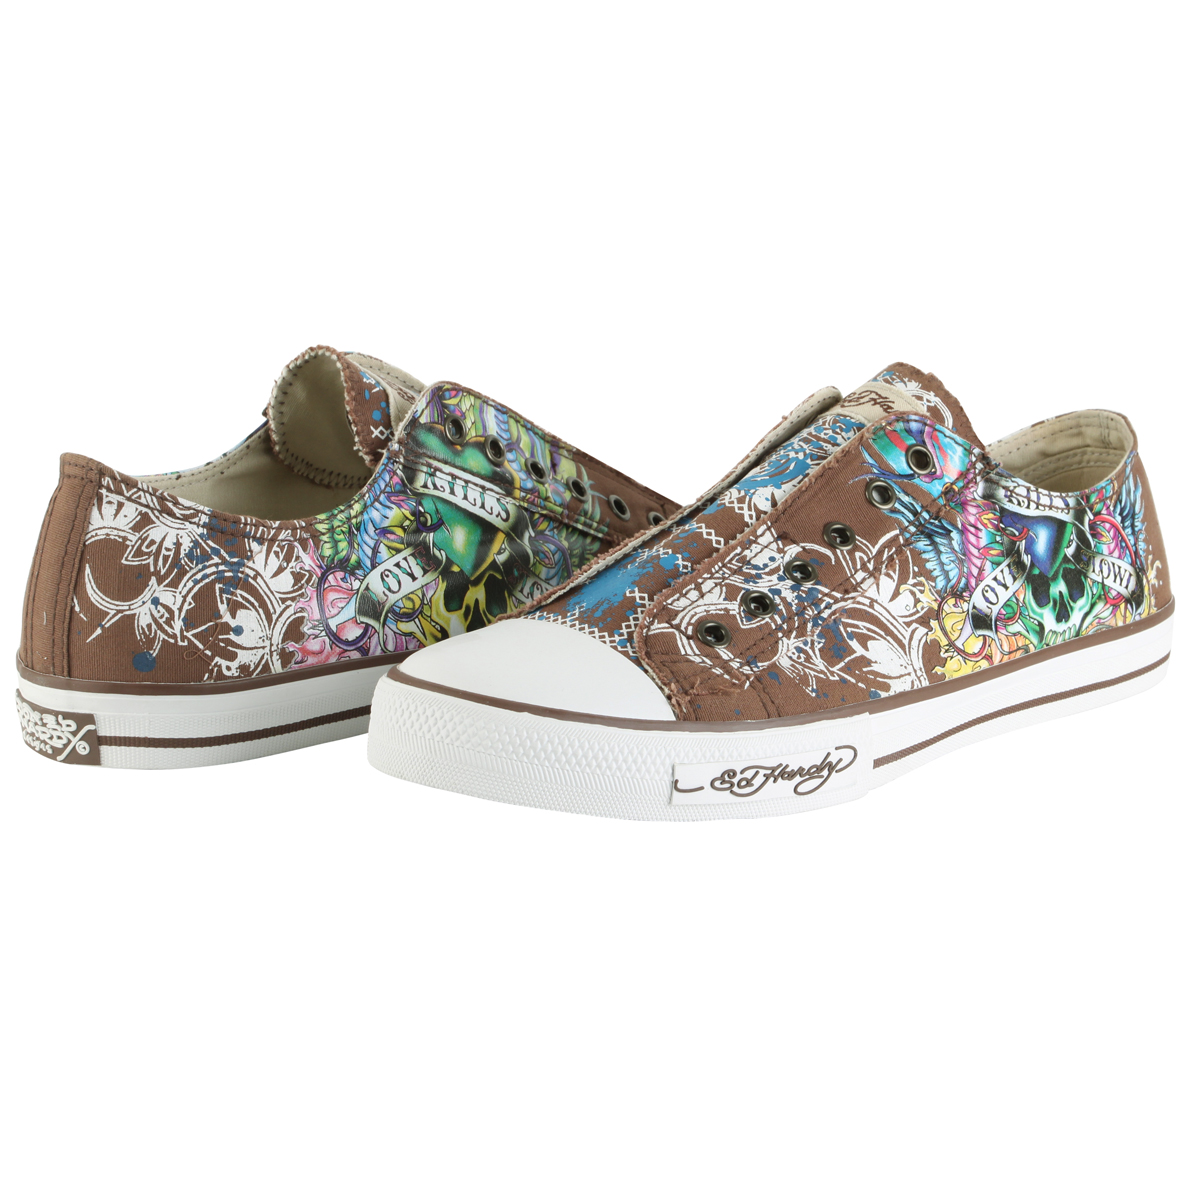 Ed Hardy Lowrise 100 Shoe for Men - Chocolate